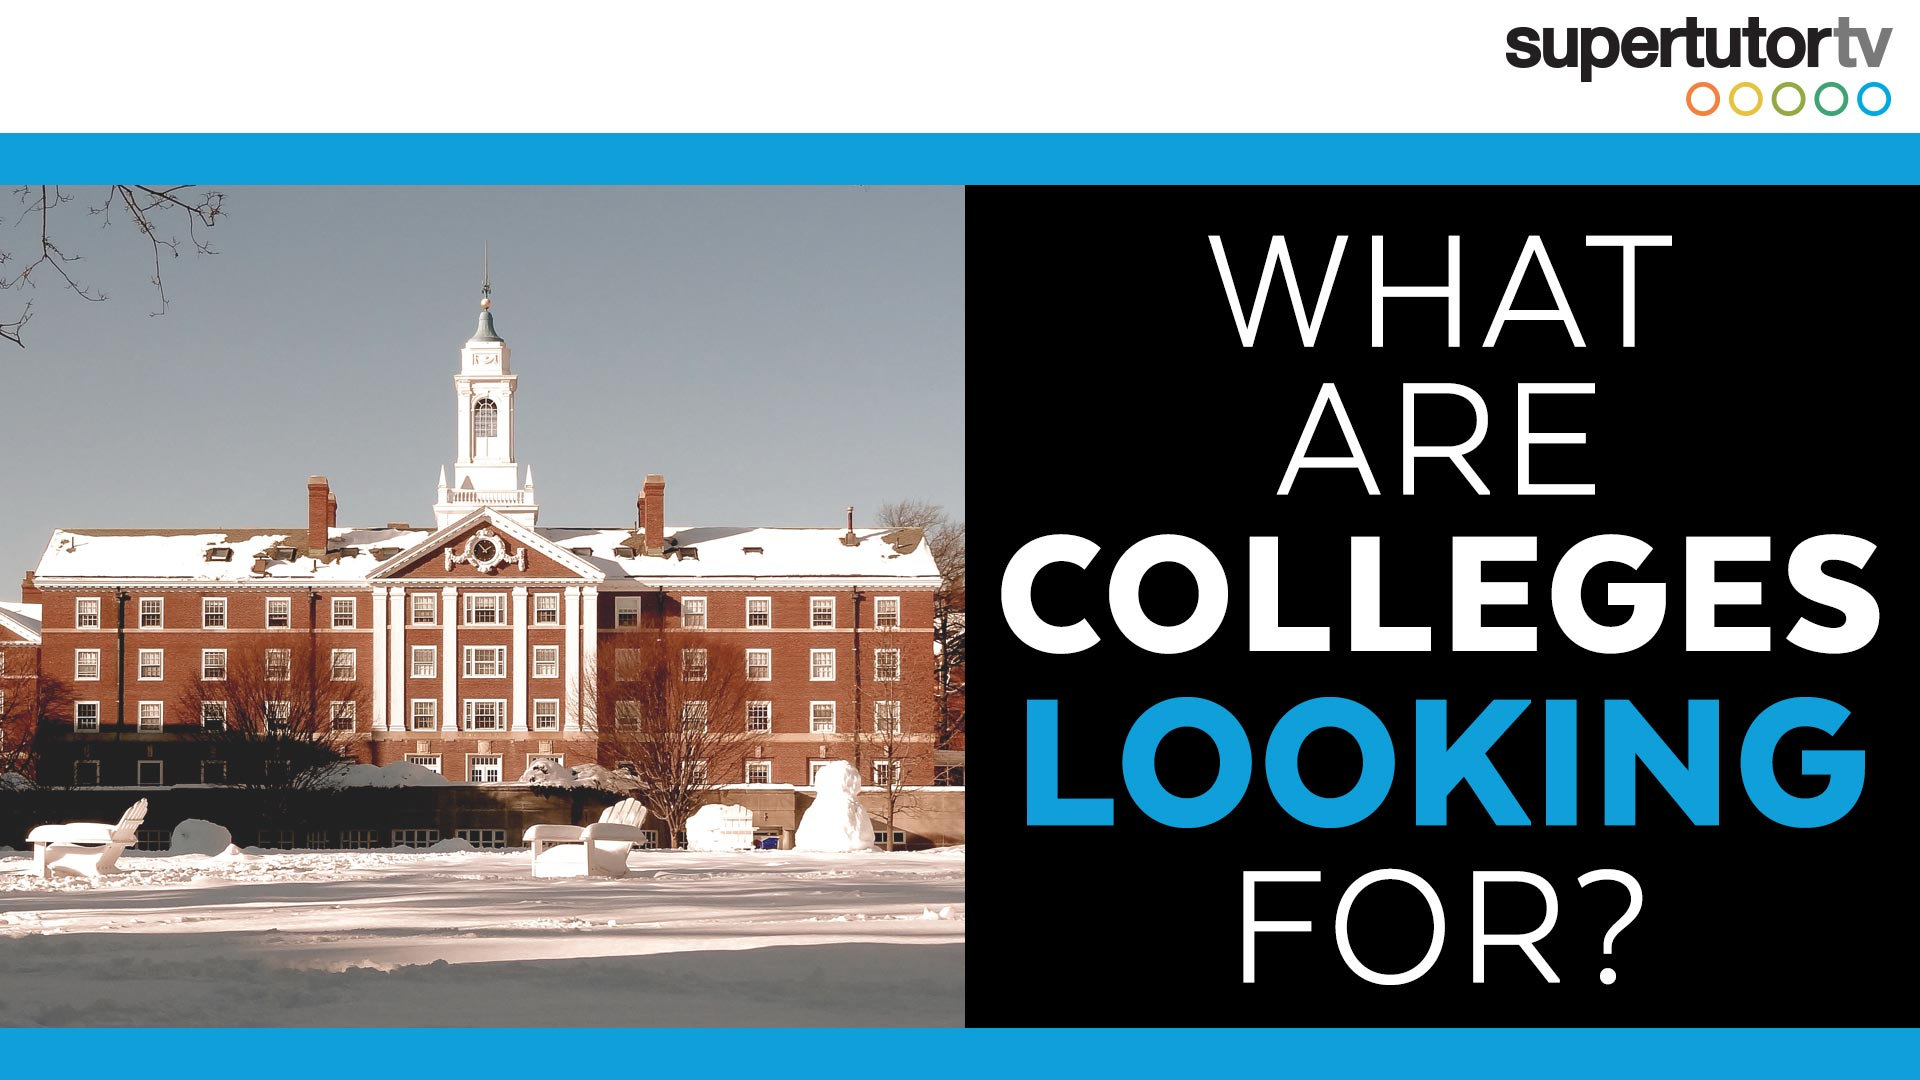 What Are Colleges Looking For? Tips for College Essays, Applications and Beyond